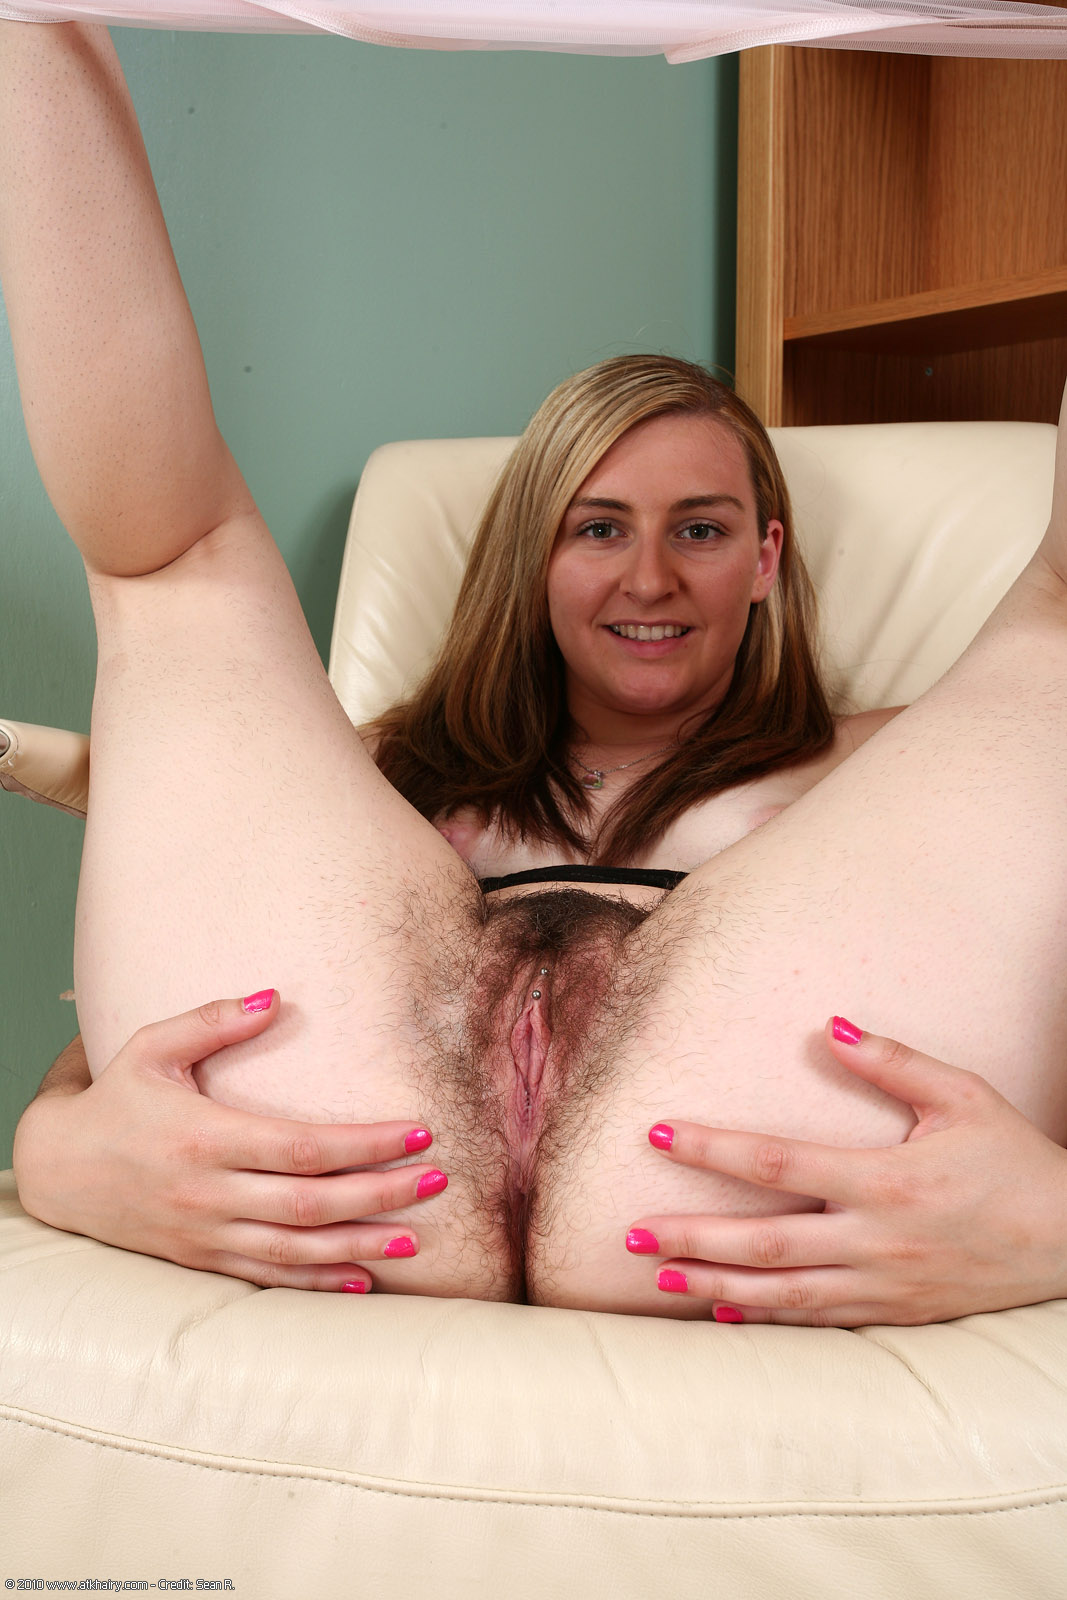 Atk hairy mature galleries